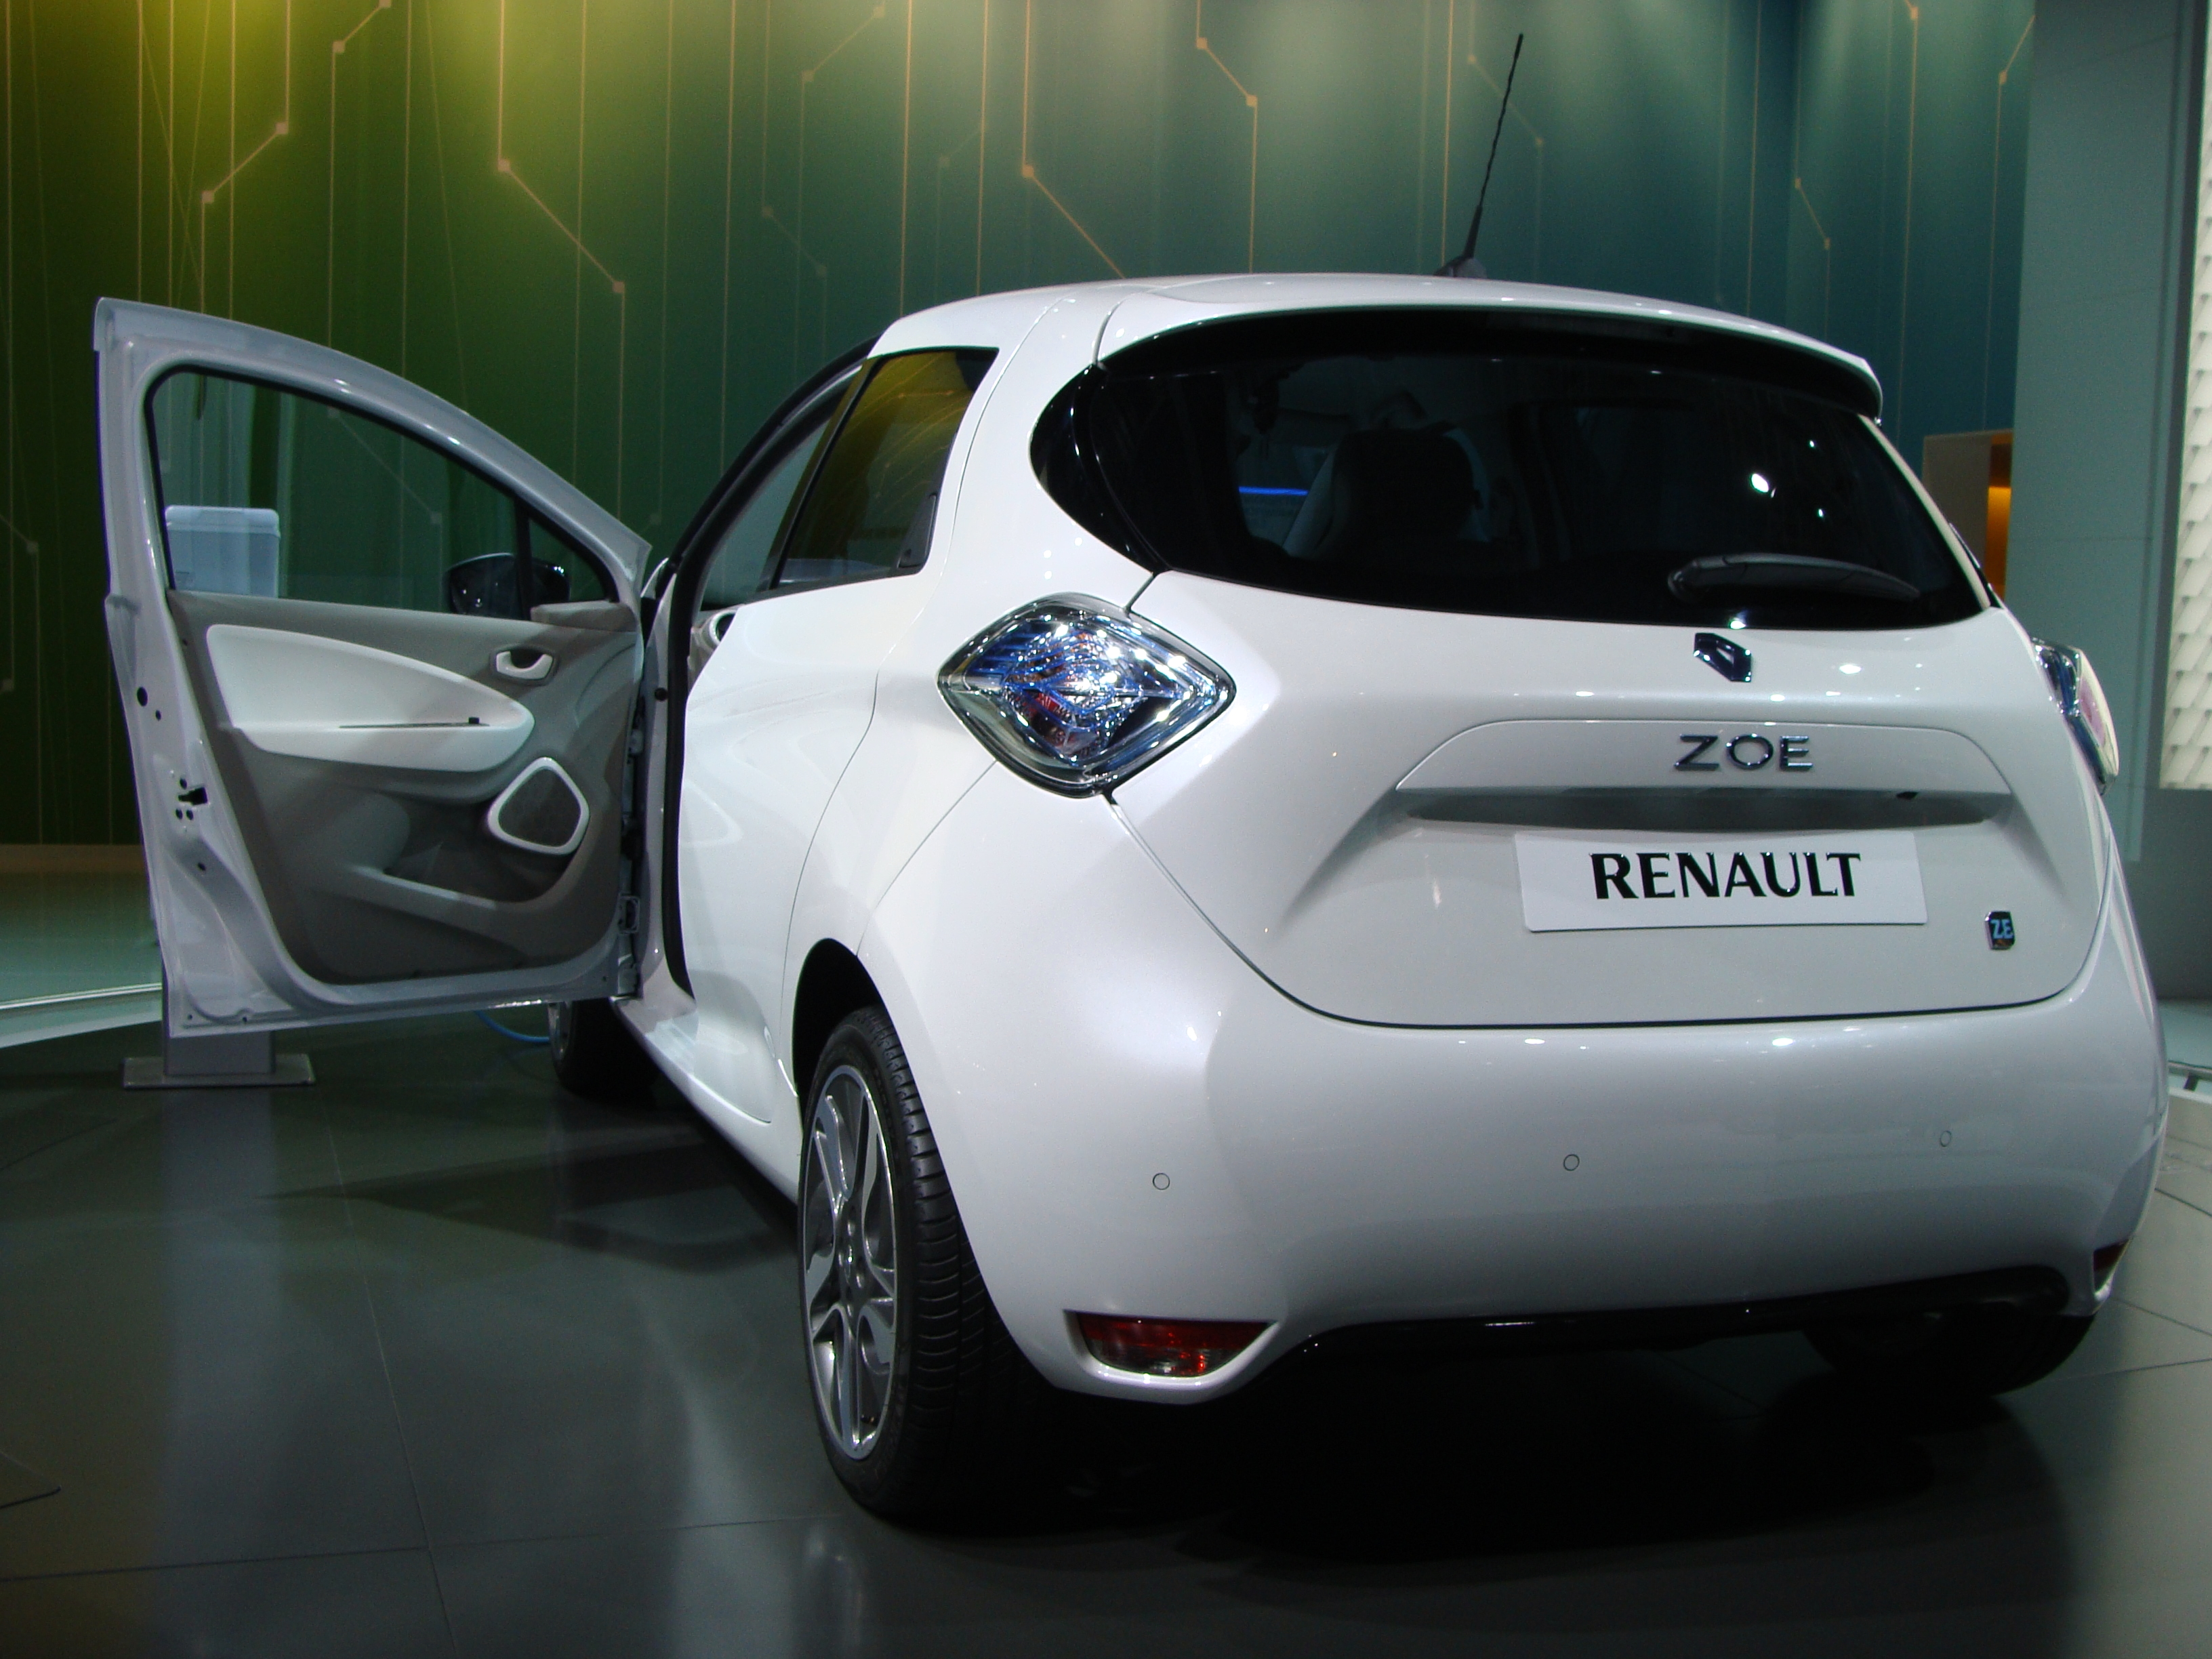 file renault zoe on mias 2012 rear view 1 jpg wikimedia commons. Black Bedroom Furniture Sets. Home Design Ideas